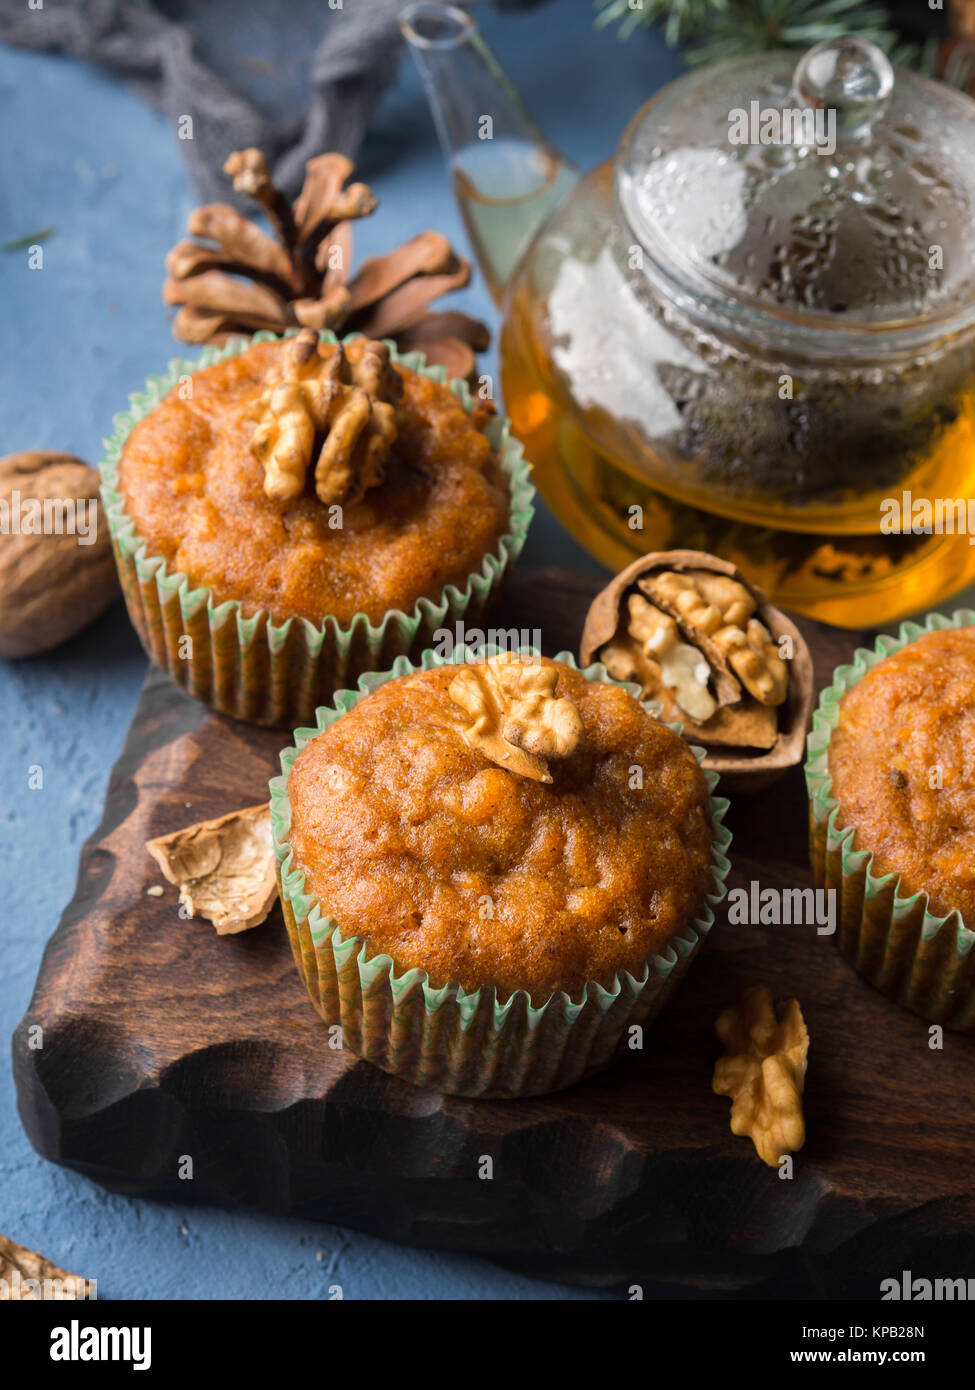 Home made Carrot spiced muffins with walnuts. Winter holiday treat - Stock Image